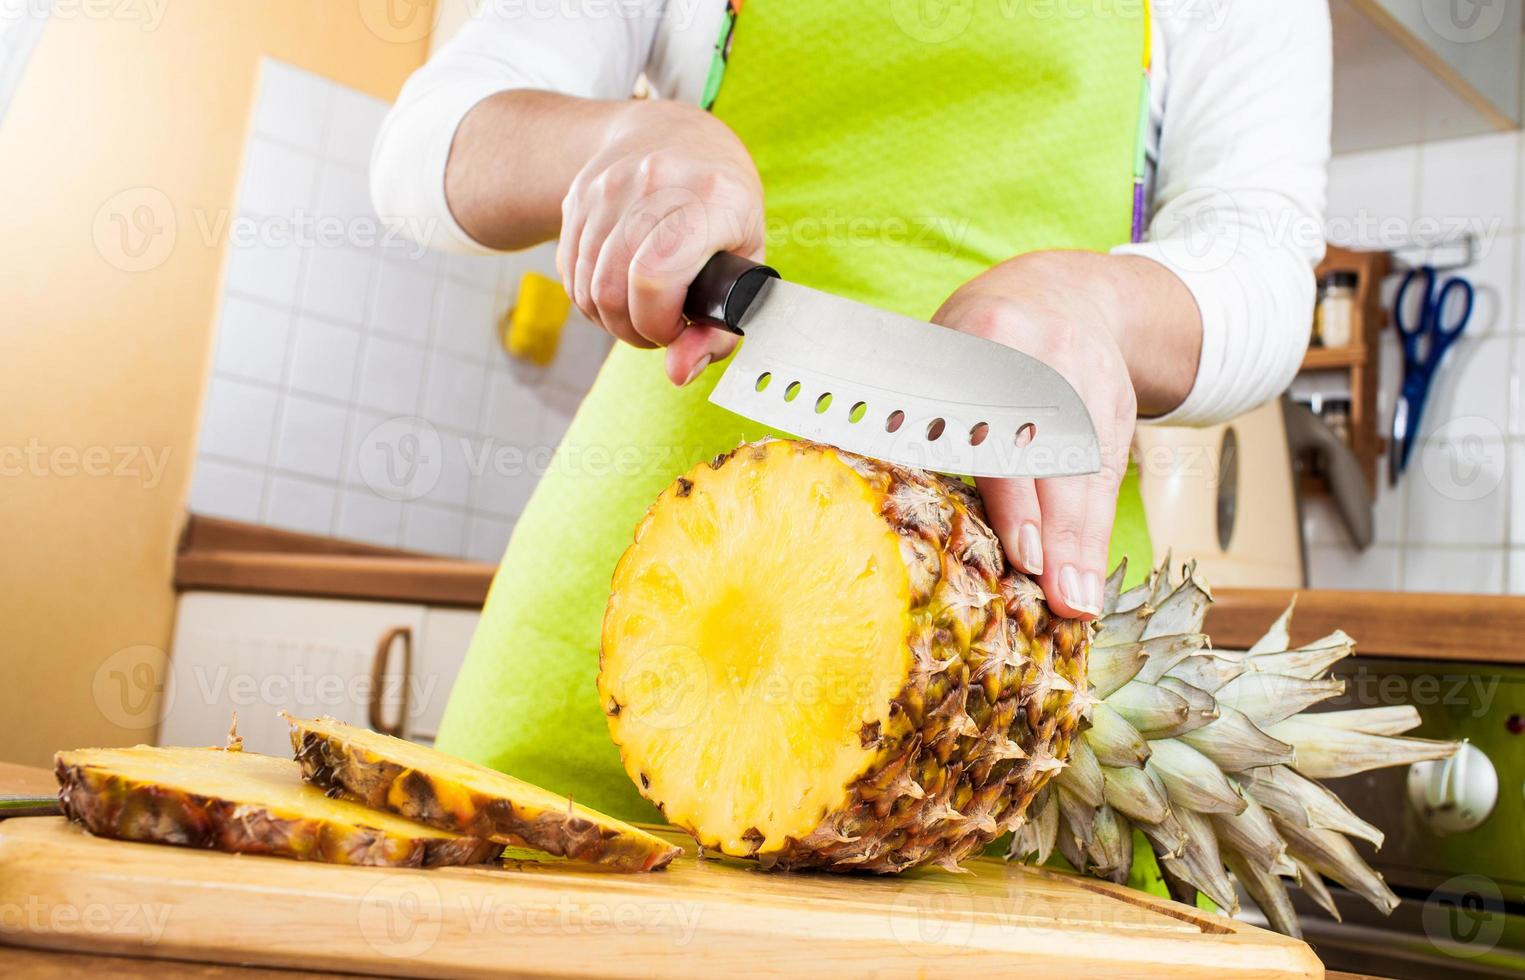 Woman's hands cutting pineapple photo